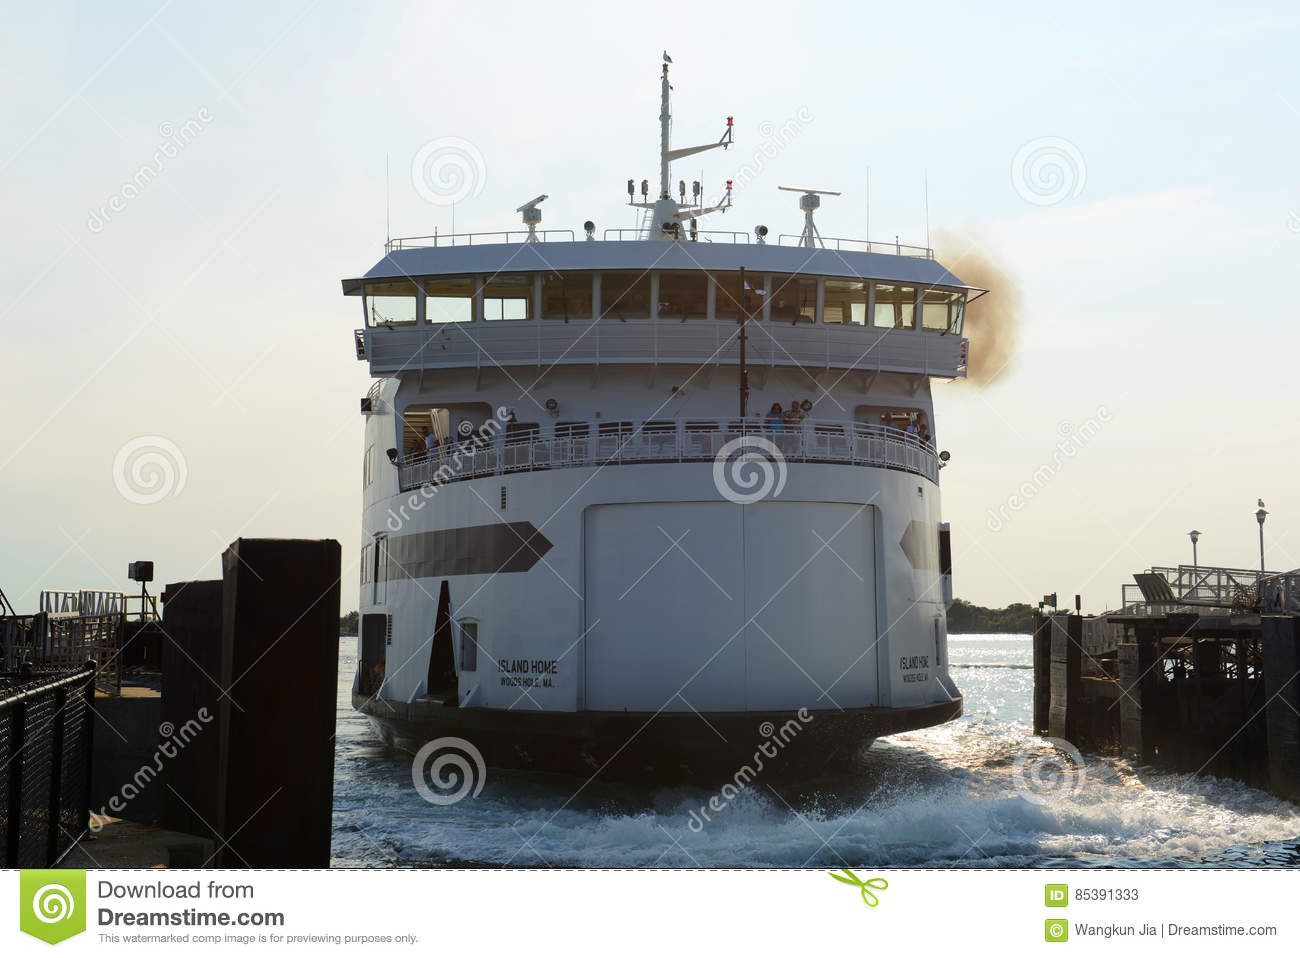 martha's vineyard ferry at woods hole, ma editorial stock photo